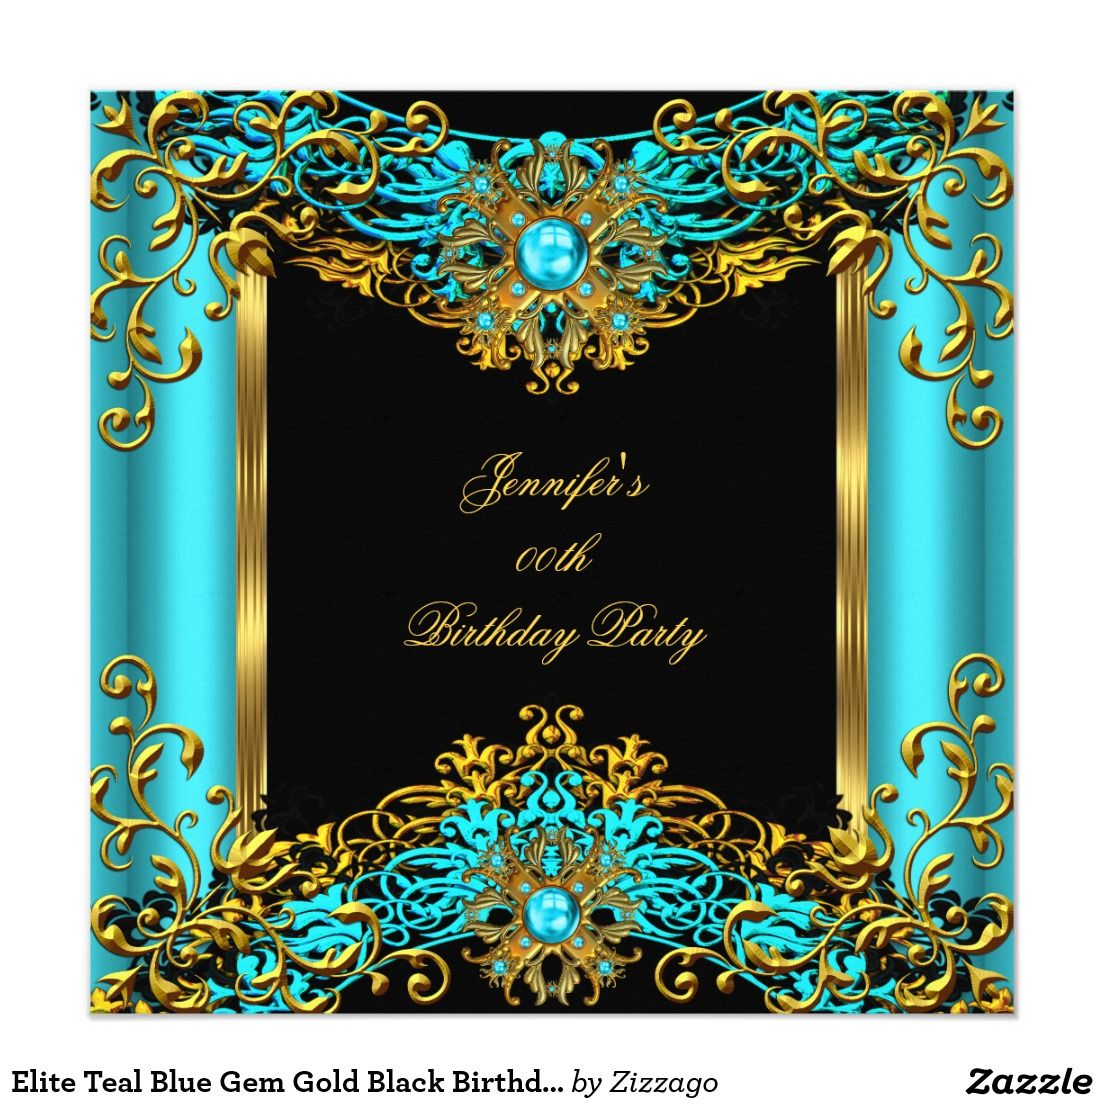 Elite Teal Blue Gem Gold Black Birthday Party 2 Invitation | Zazzle.com in  2020 | Masquerade party centerpieces, Pearl birthday party, Blue gems